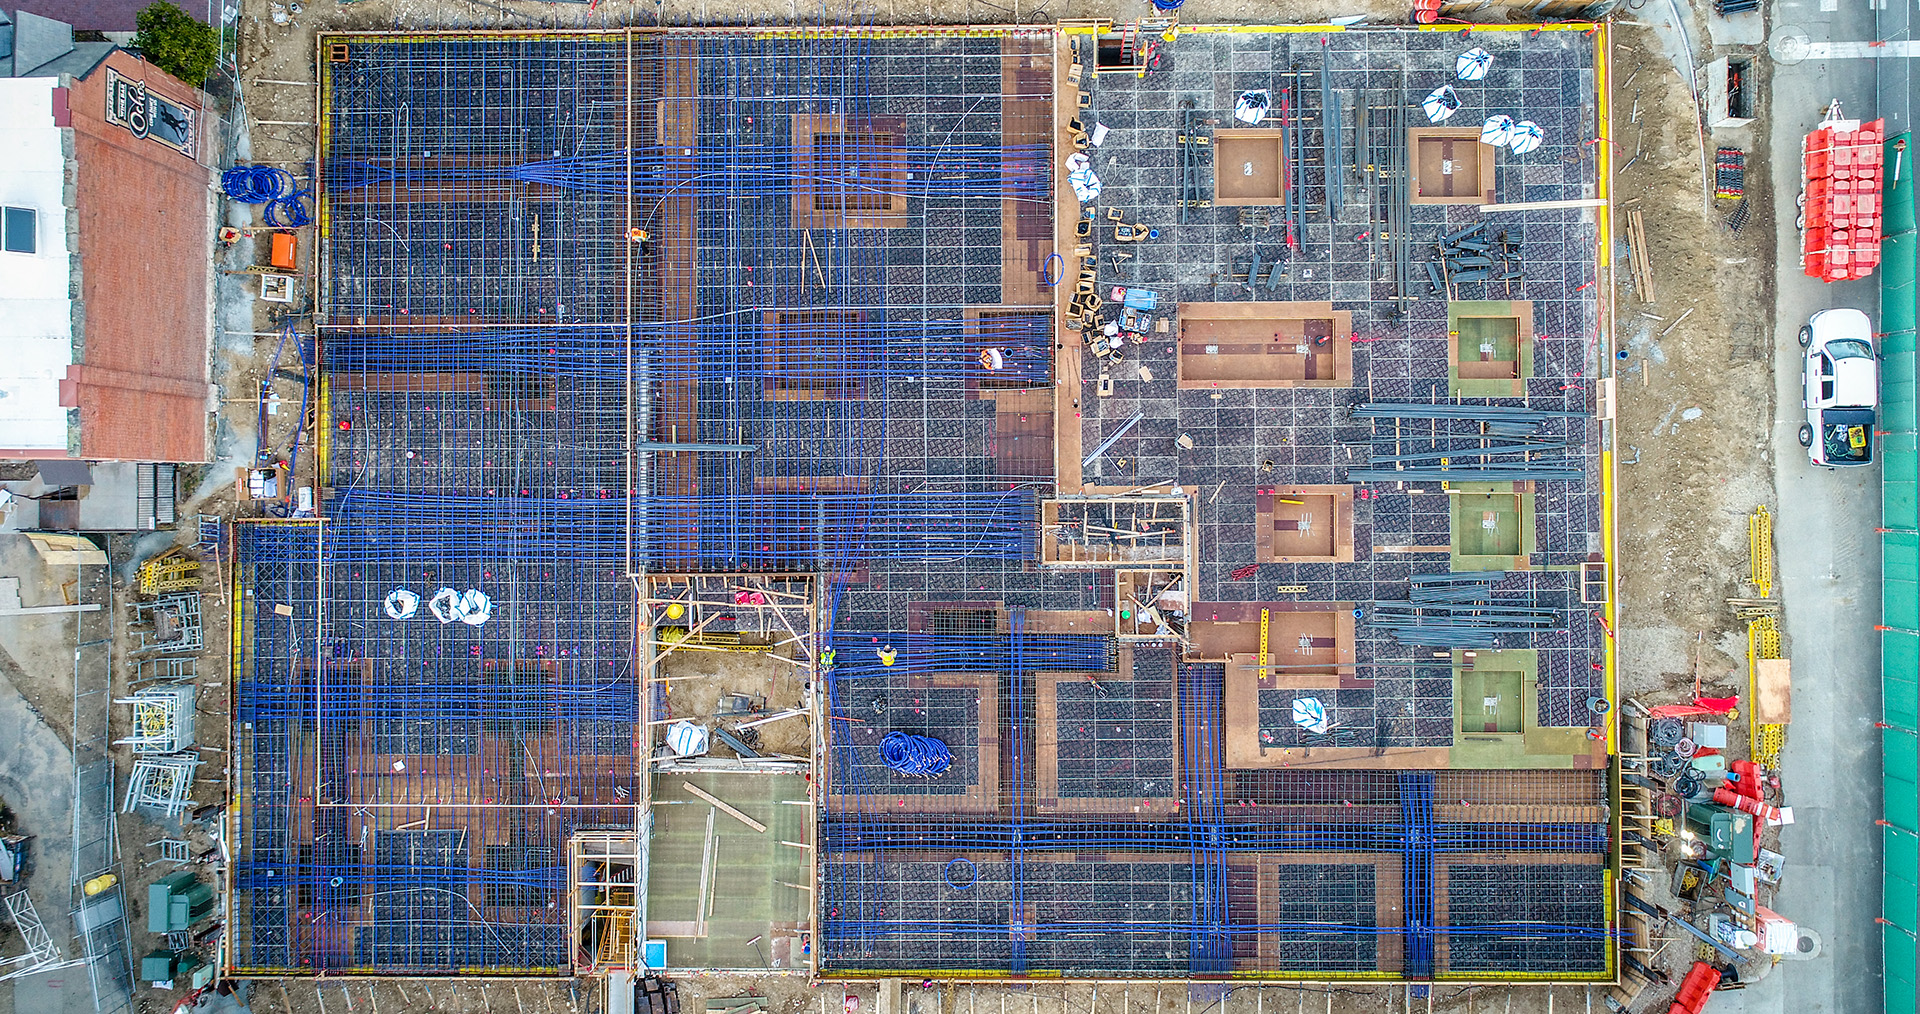 Building Complexity: 5th & Idaho Post-Tensioned Concrete